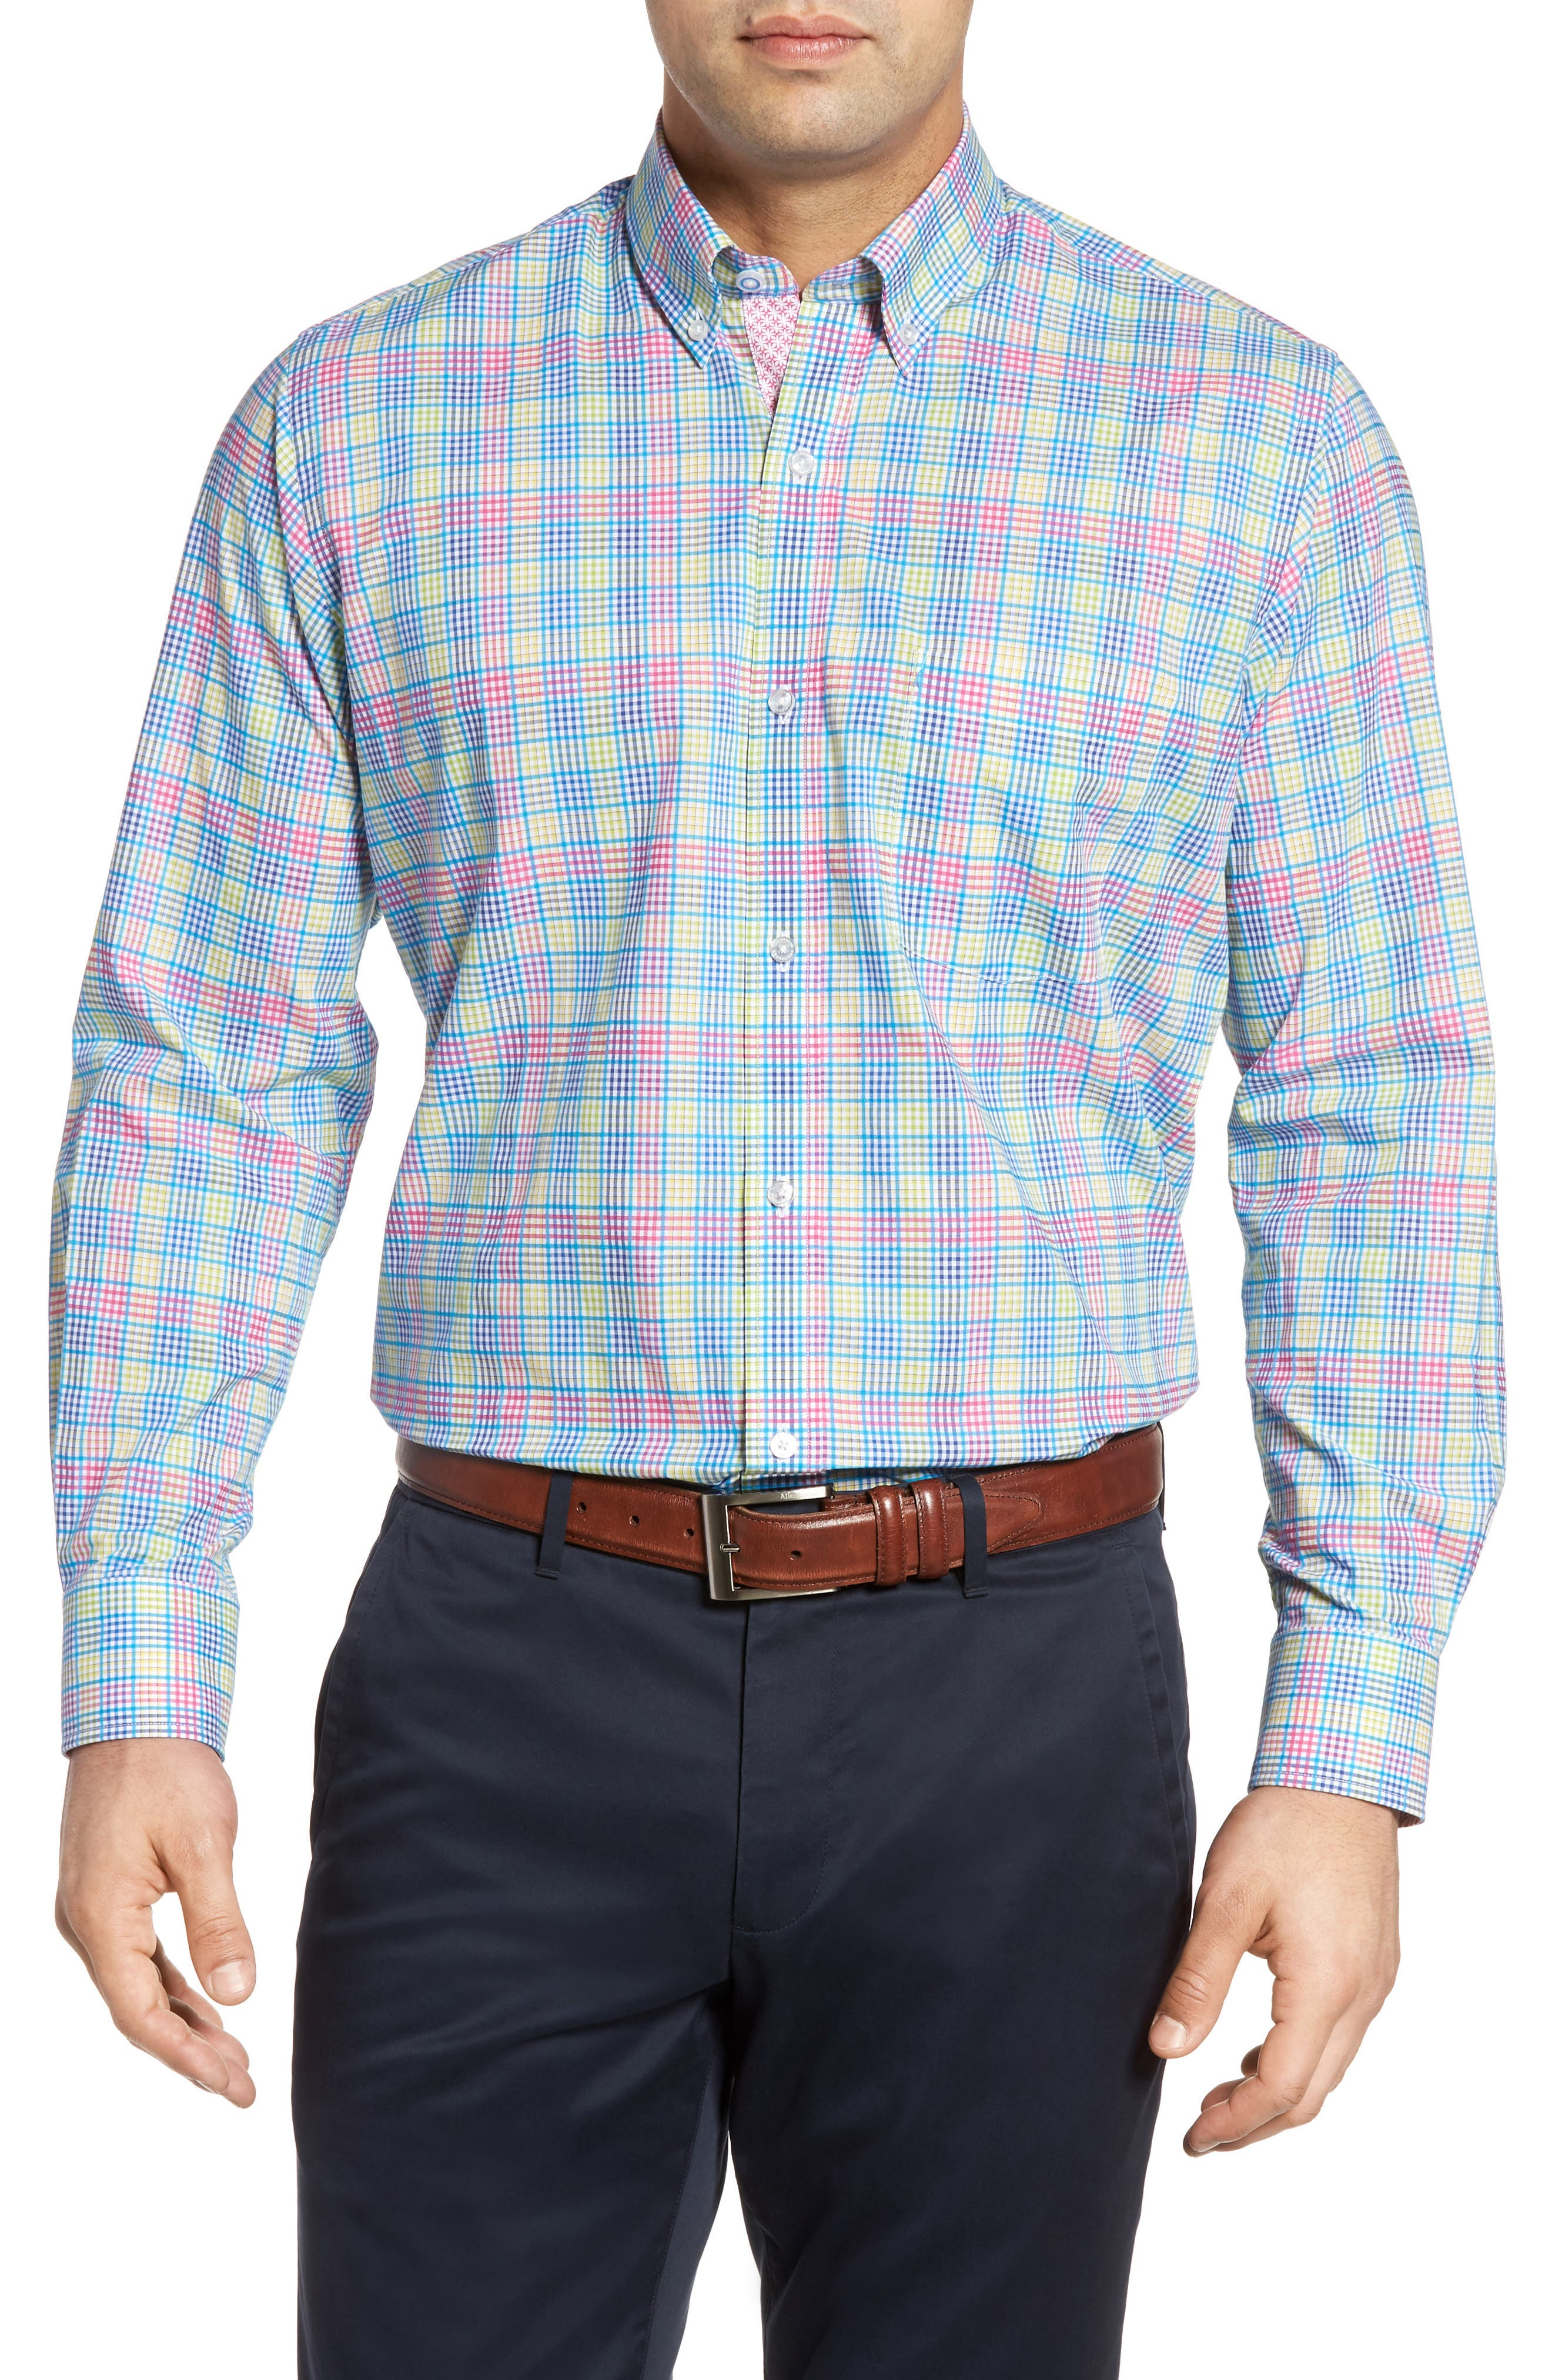 Main Image - TailorByrd Peachleaf Sport Shirt